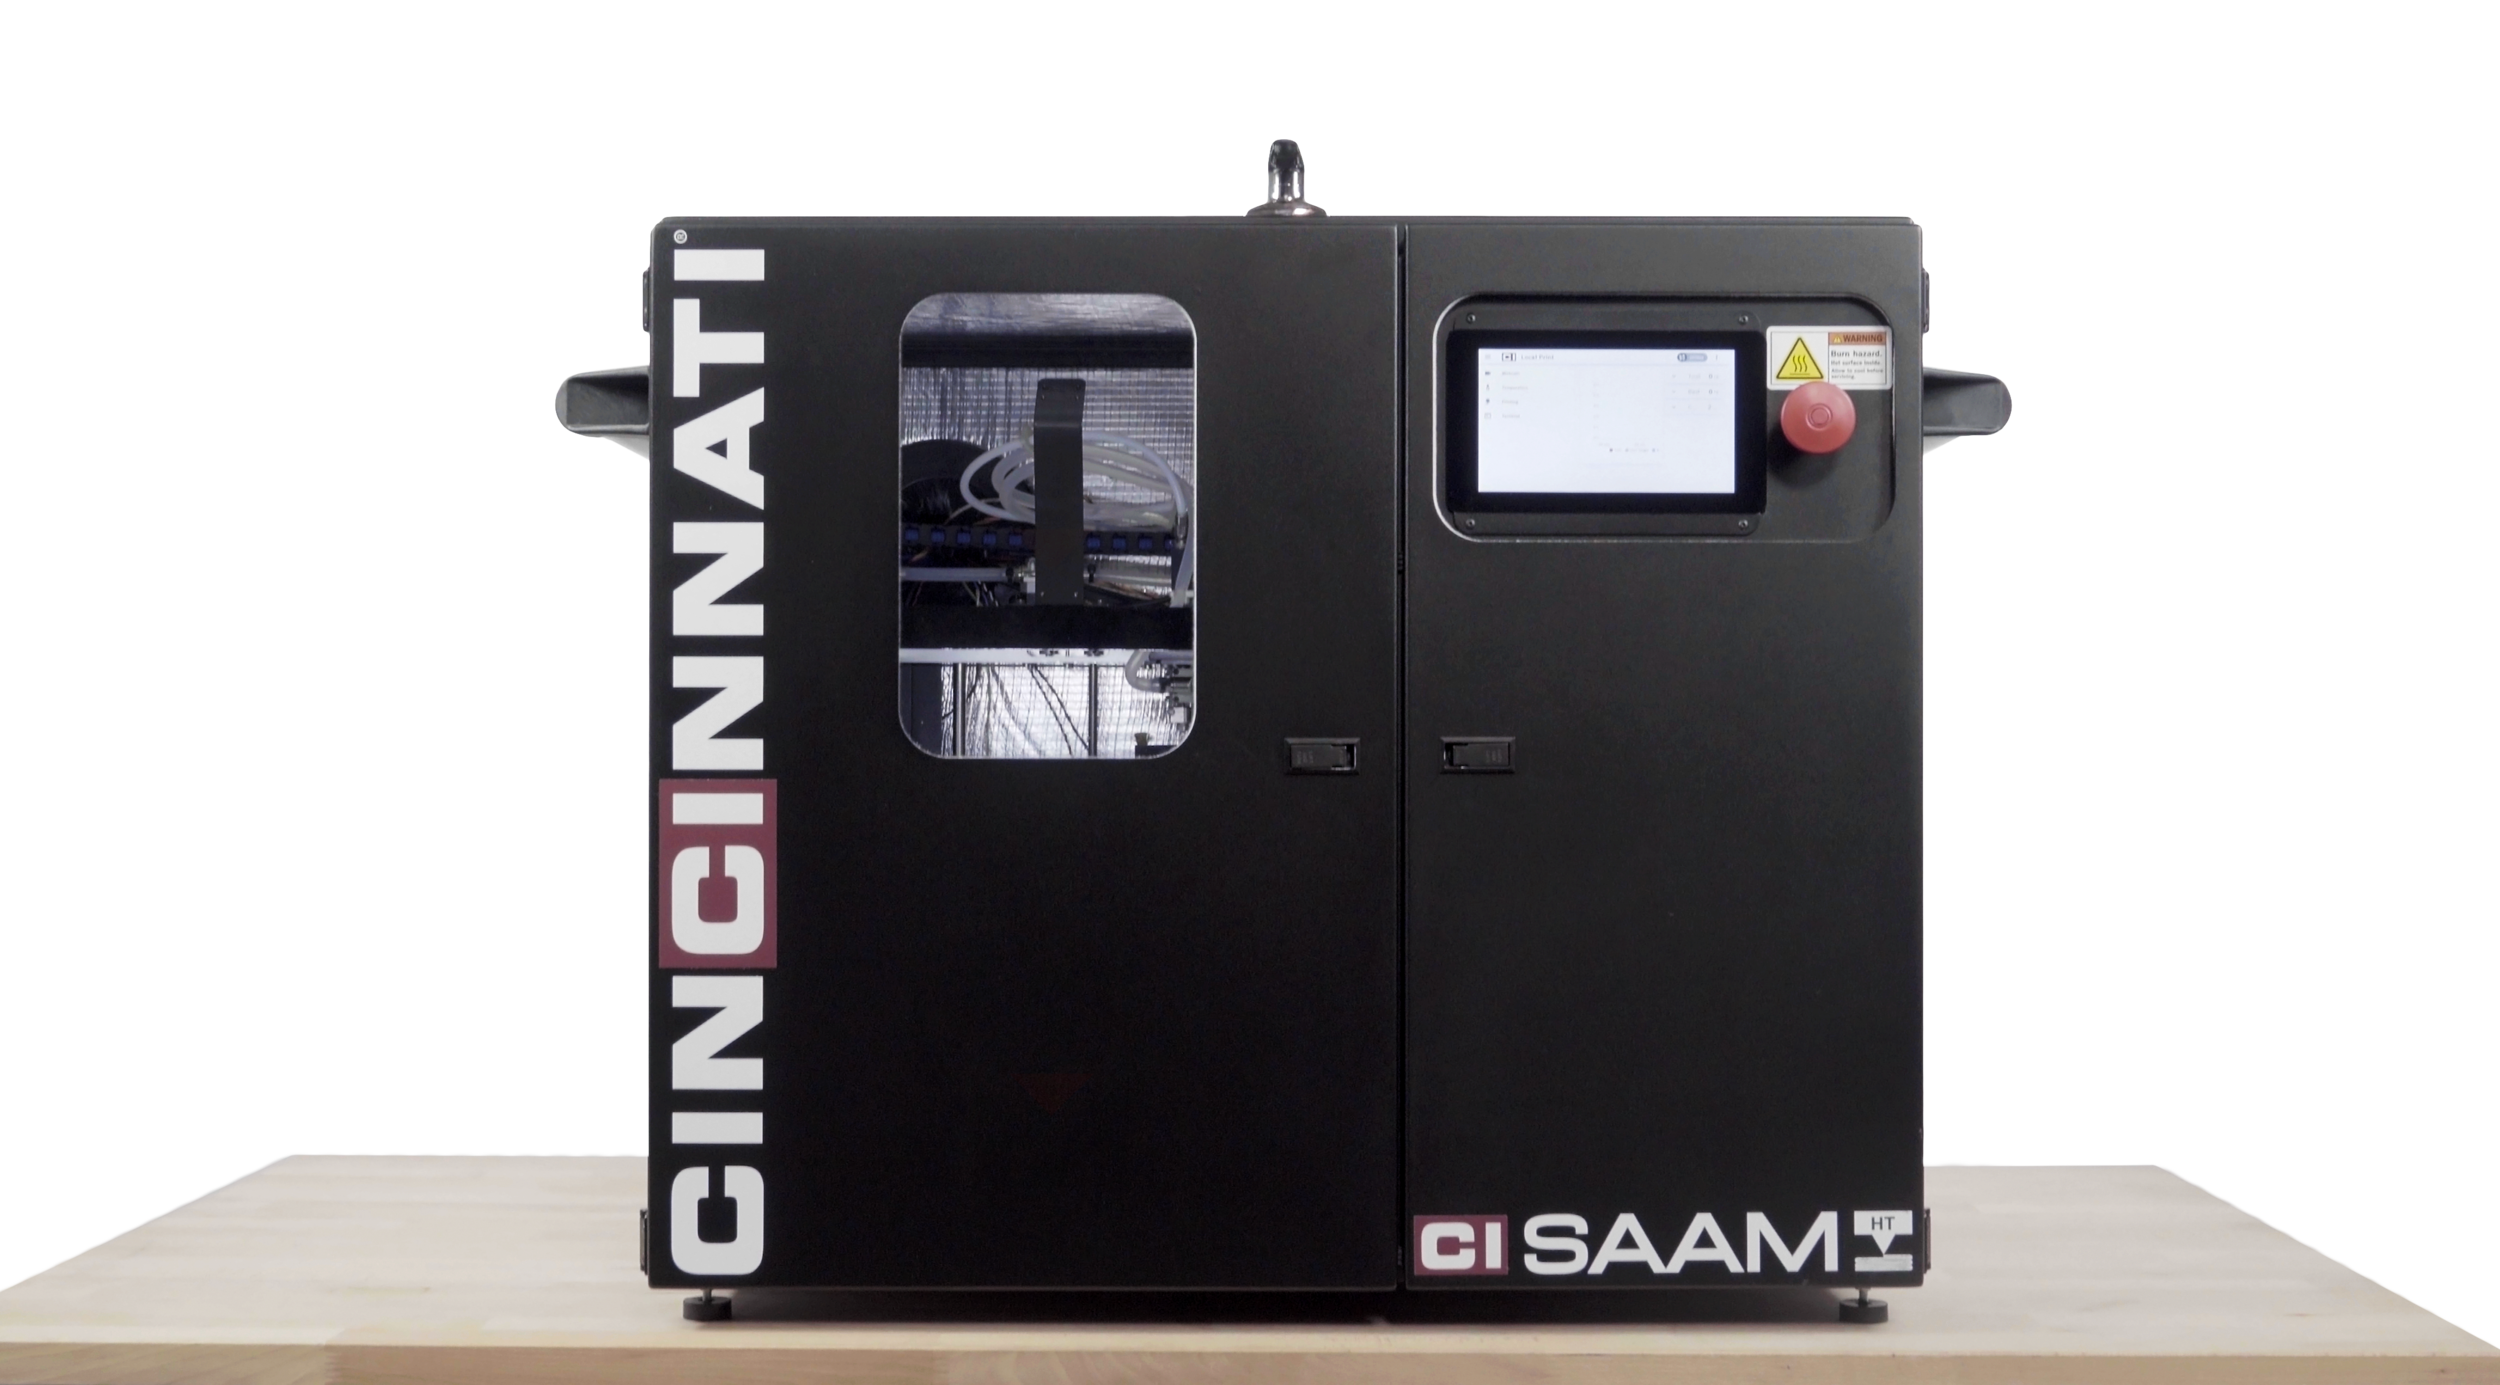 SAAM HT - Small Area Additive Manufacturing High Temperature